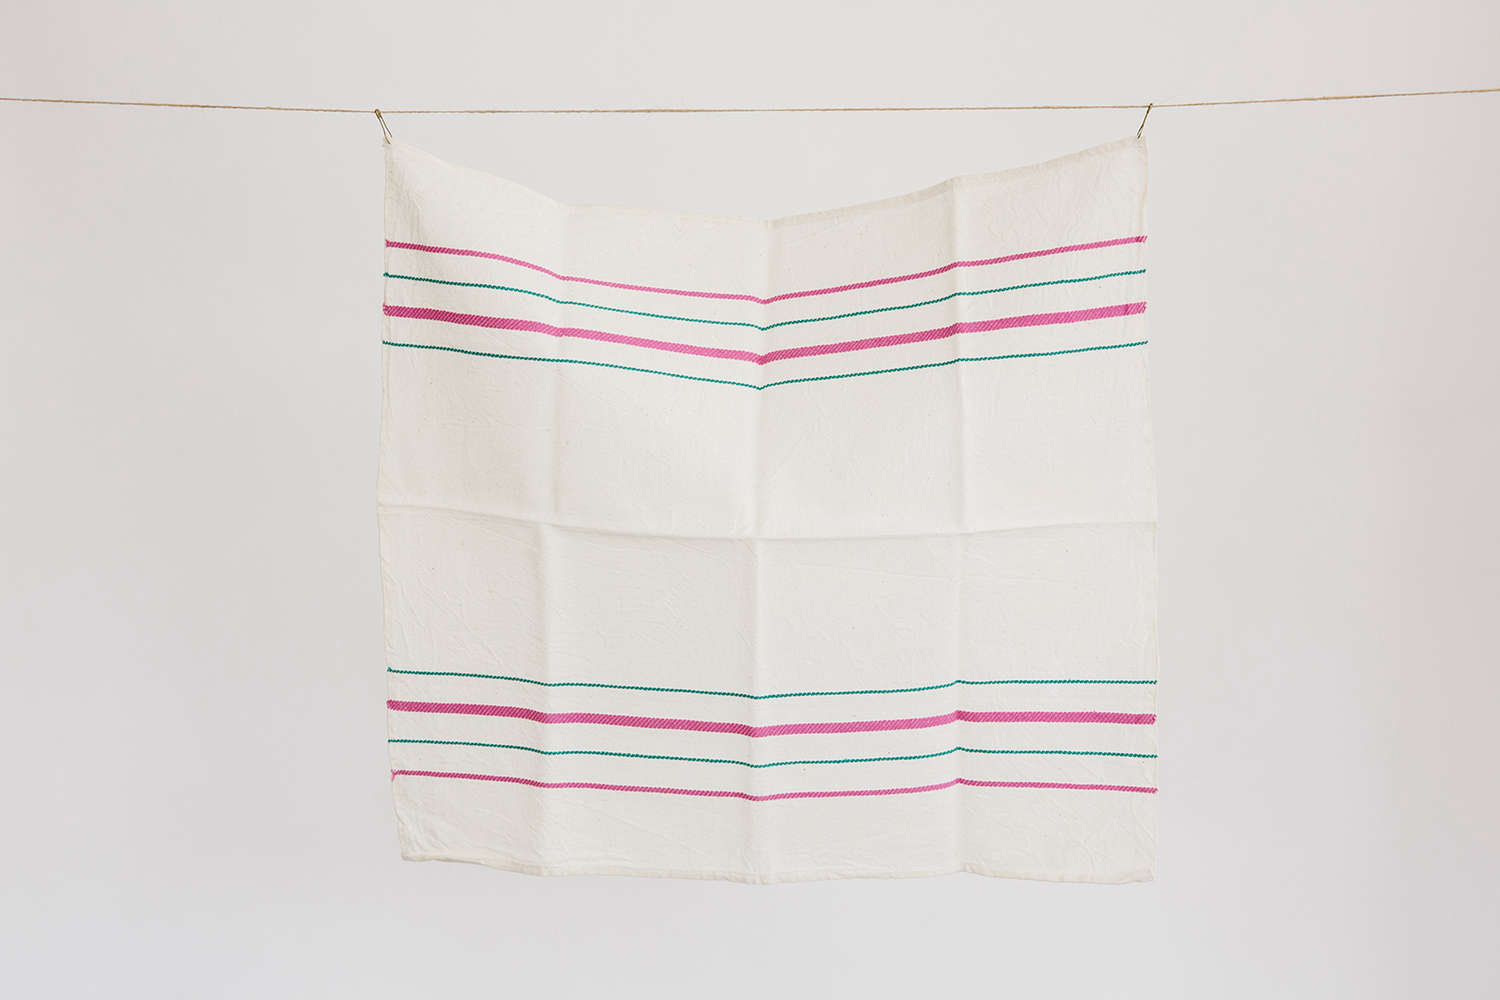 Pink and green striped white linen towel set at Housewares store Set and Co. in Dallas| Remodelista